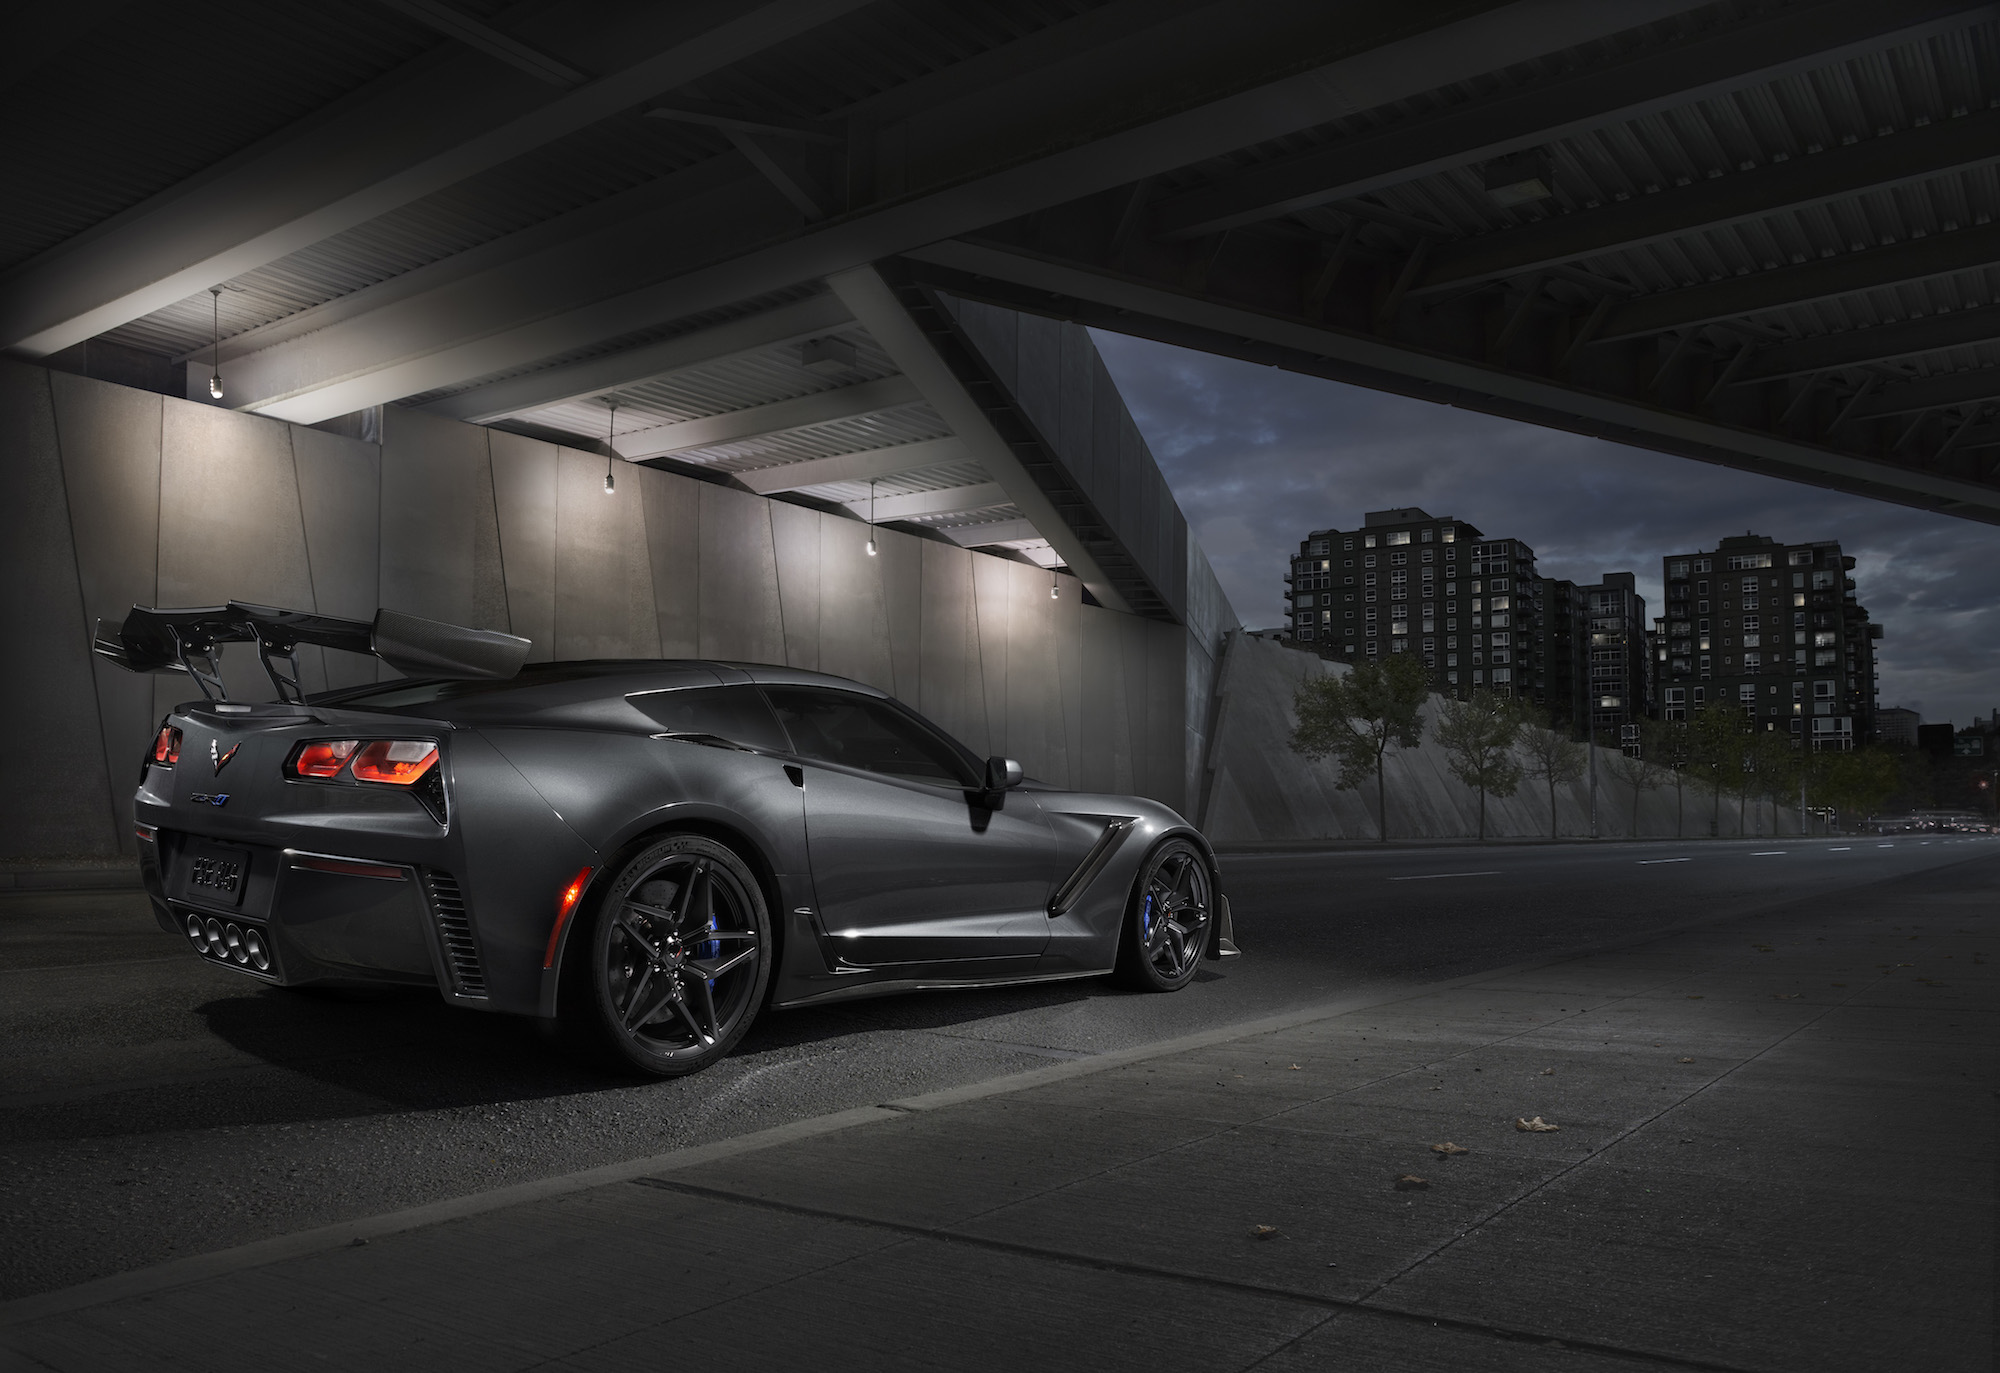 GM unveils fastest Corvette ever with top speed of 210 miles per hour